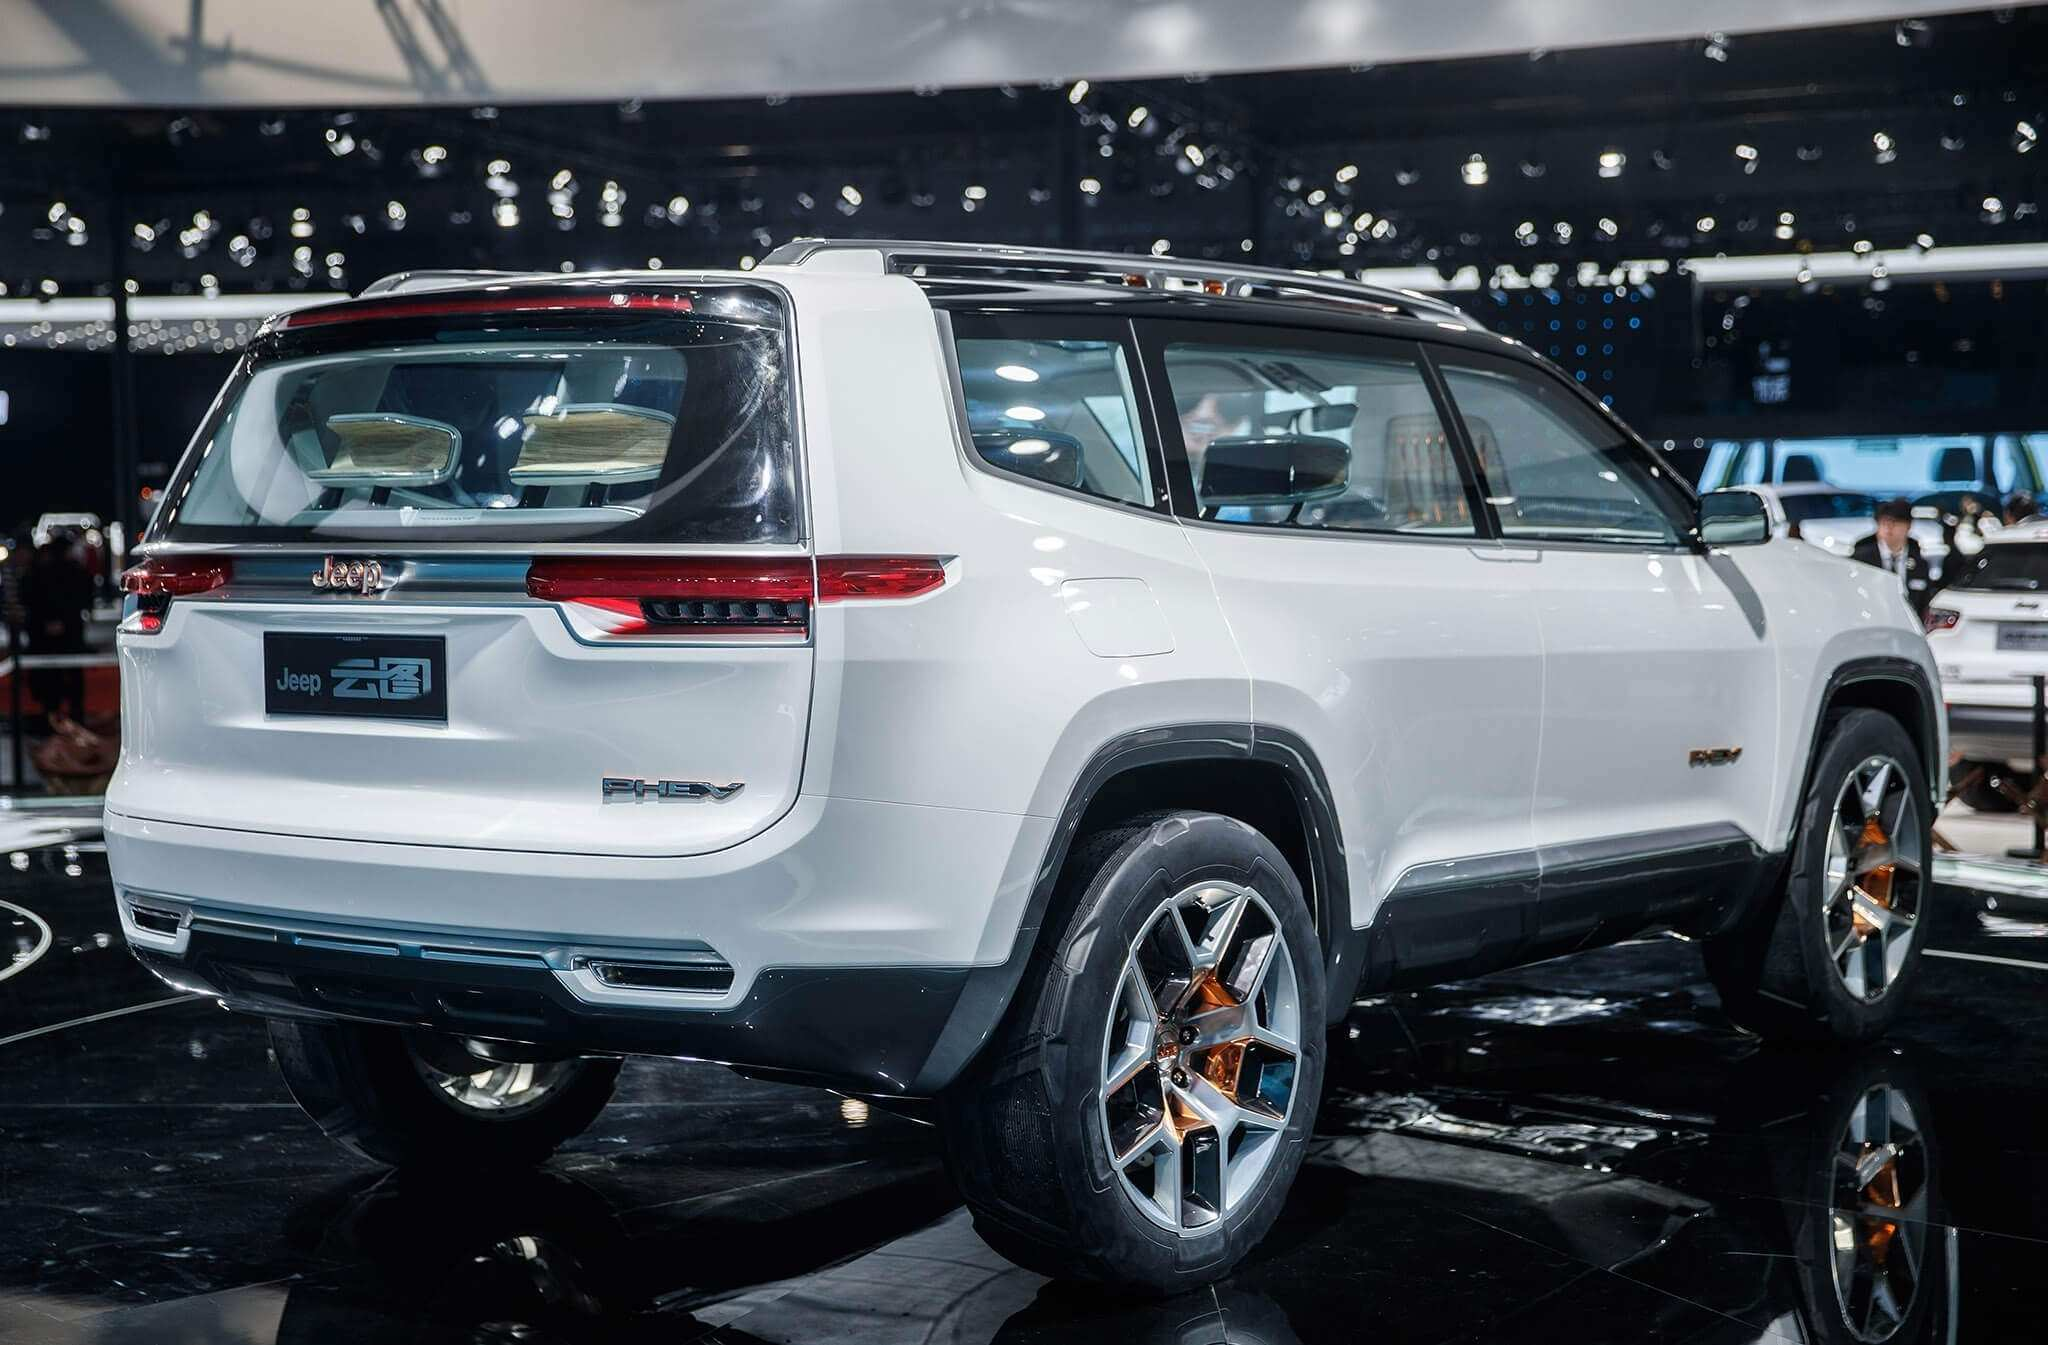 59 The Best Jeep Patriot 2020 Specs And Review